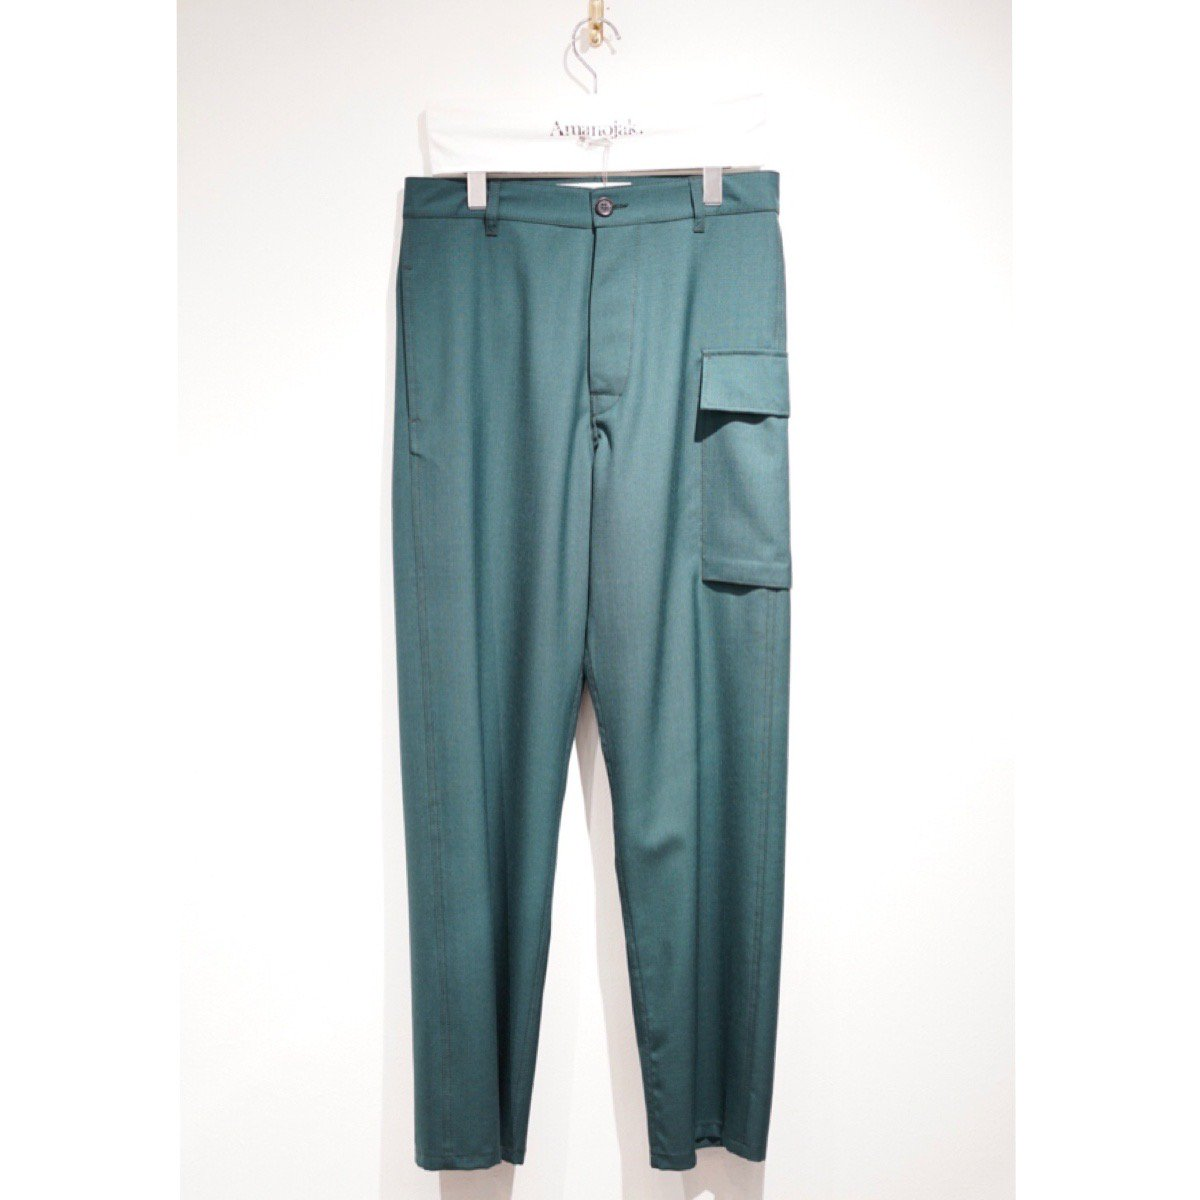 MARNI-RIP STOP WOOSTED WOOL TROUSER<br>(在庫あり)